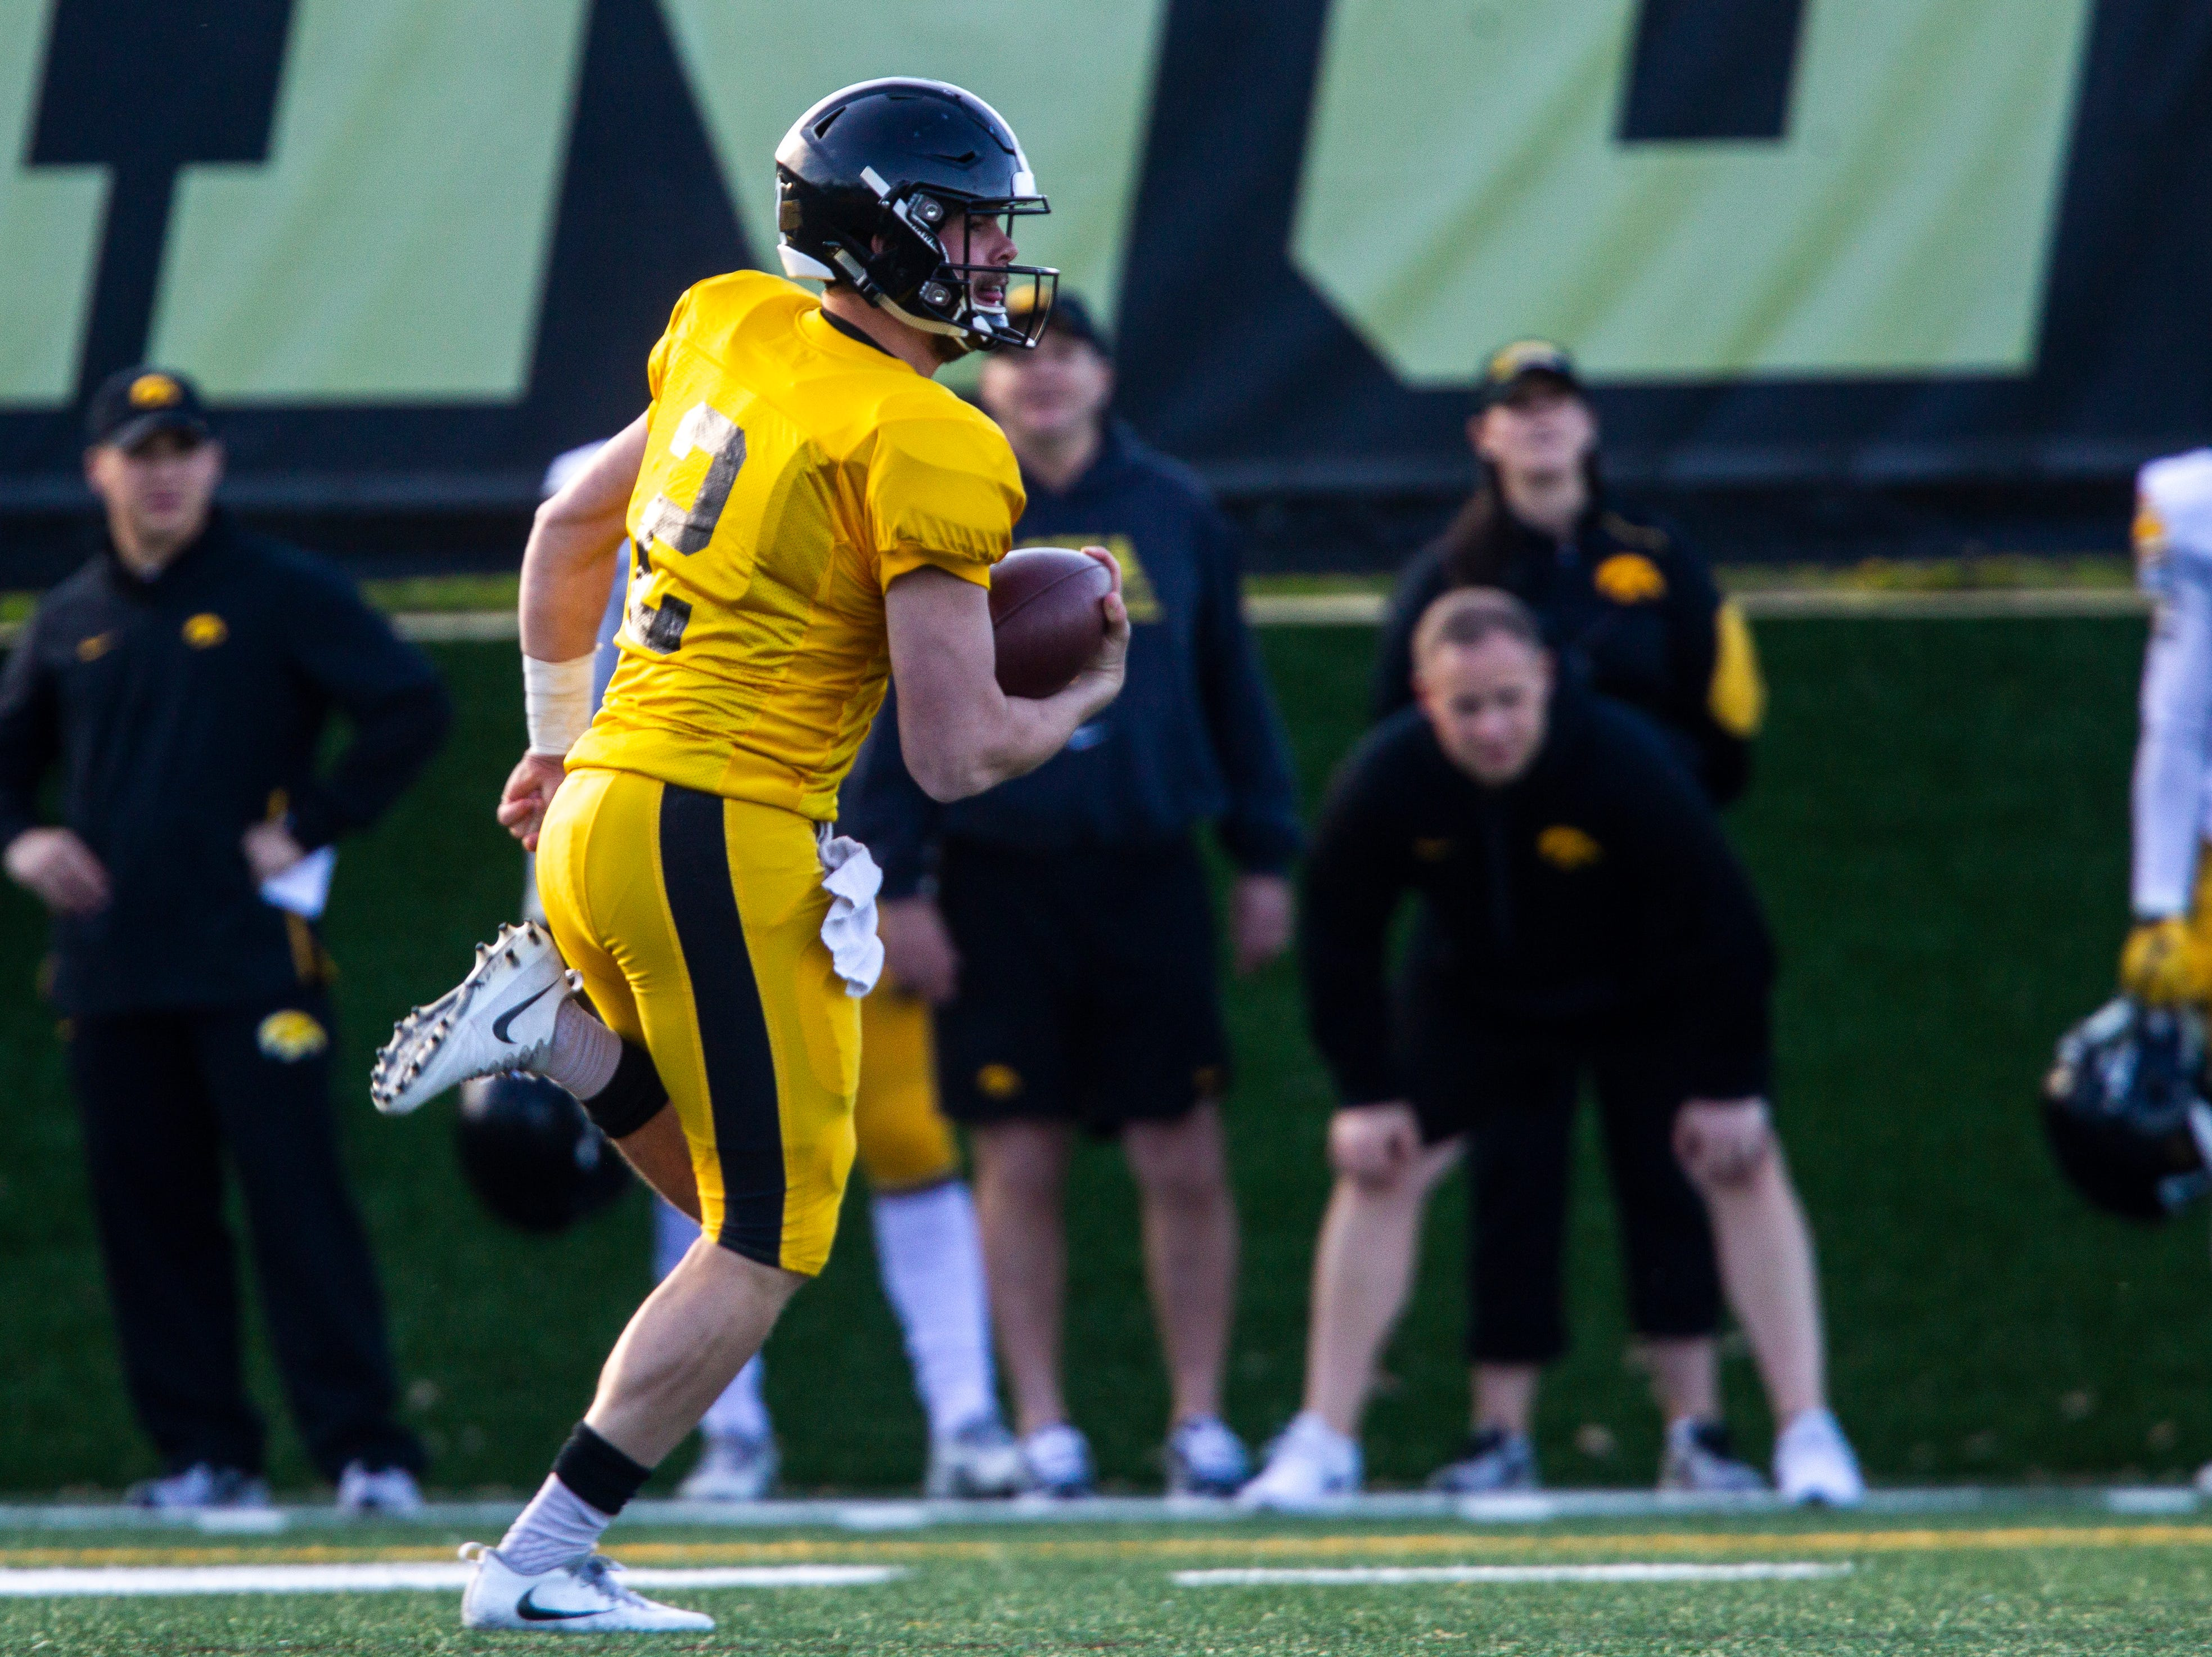 Iowa quarterback Peyton Mansell (2) rushes during the final spring football practice, Friday, April 26, 2019, at the University of Iowa outdoor practice facility in Iowa City, Iowa.